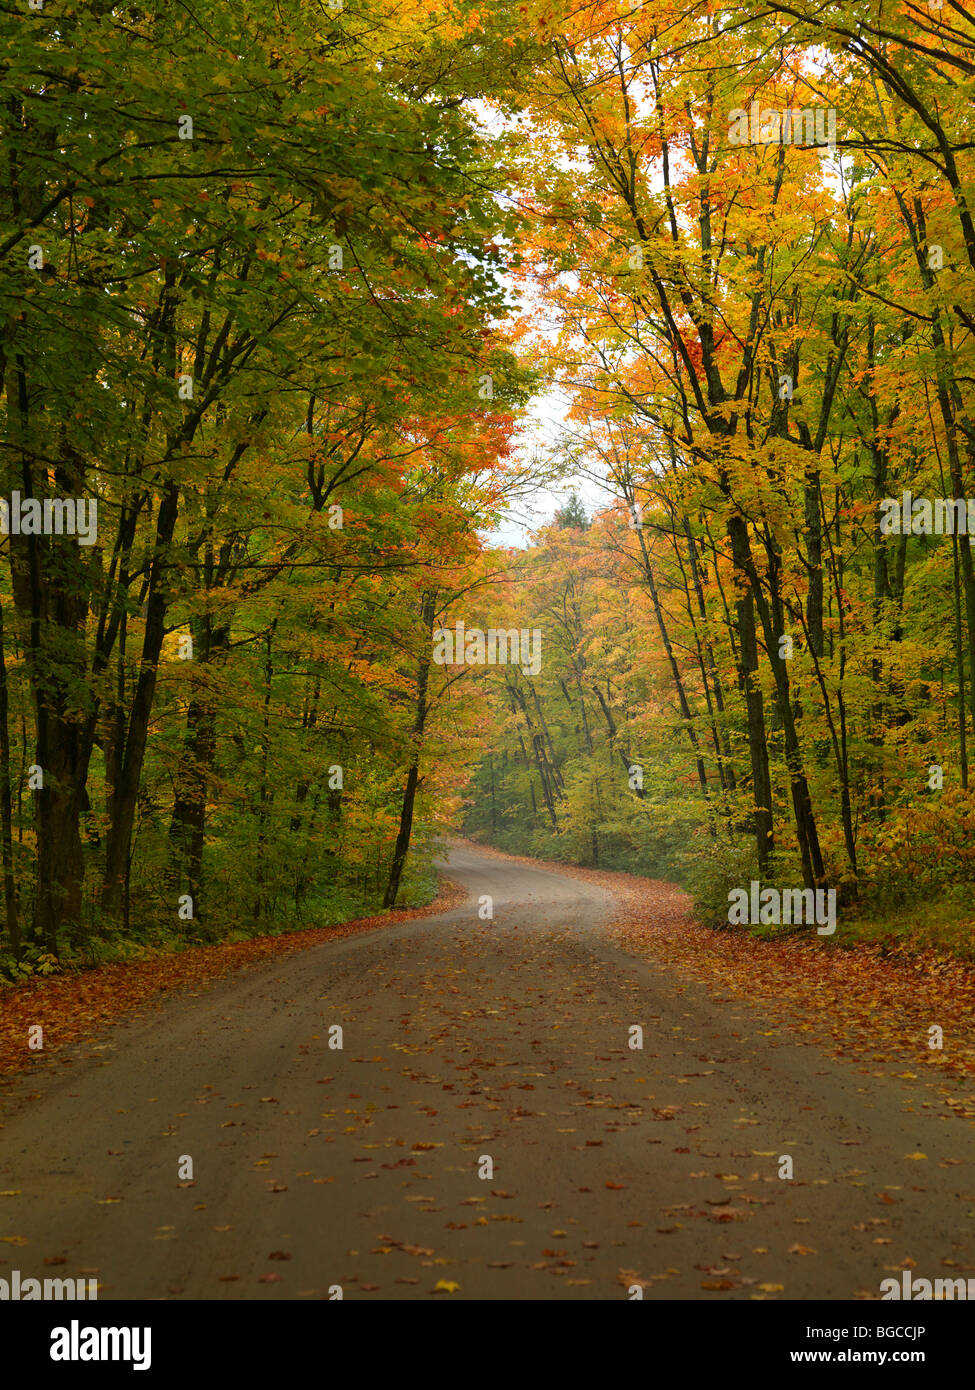 Winding unpaved road through beautiful misty fall nature scenery. Algonquin Provincial Park, Ontario, Canada. - Stock Image